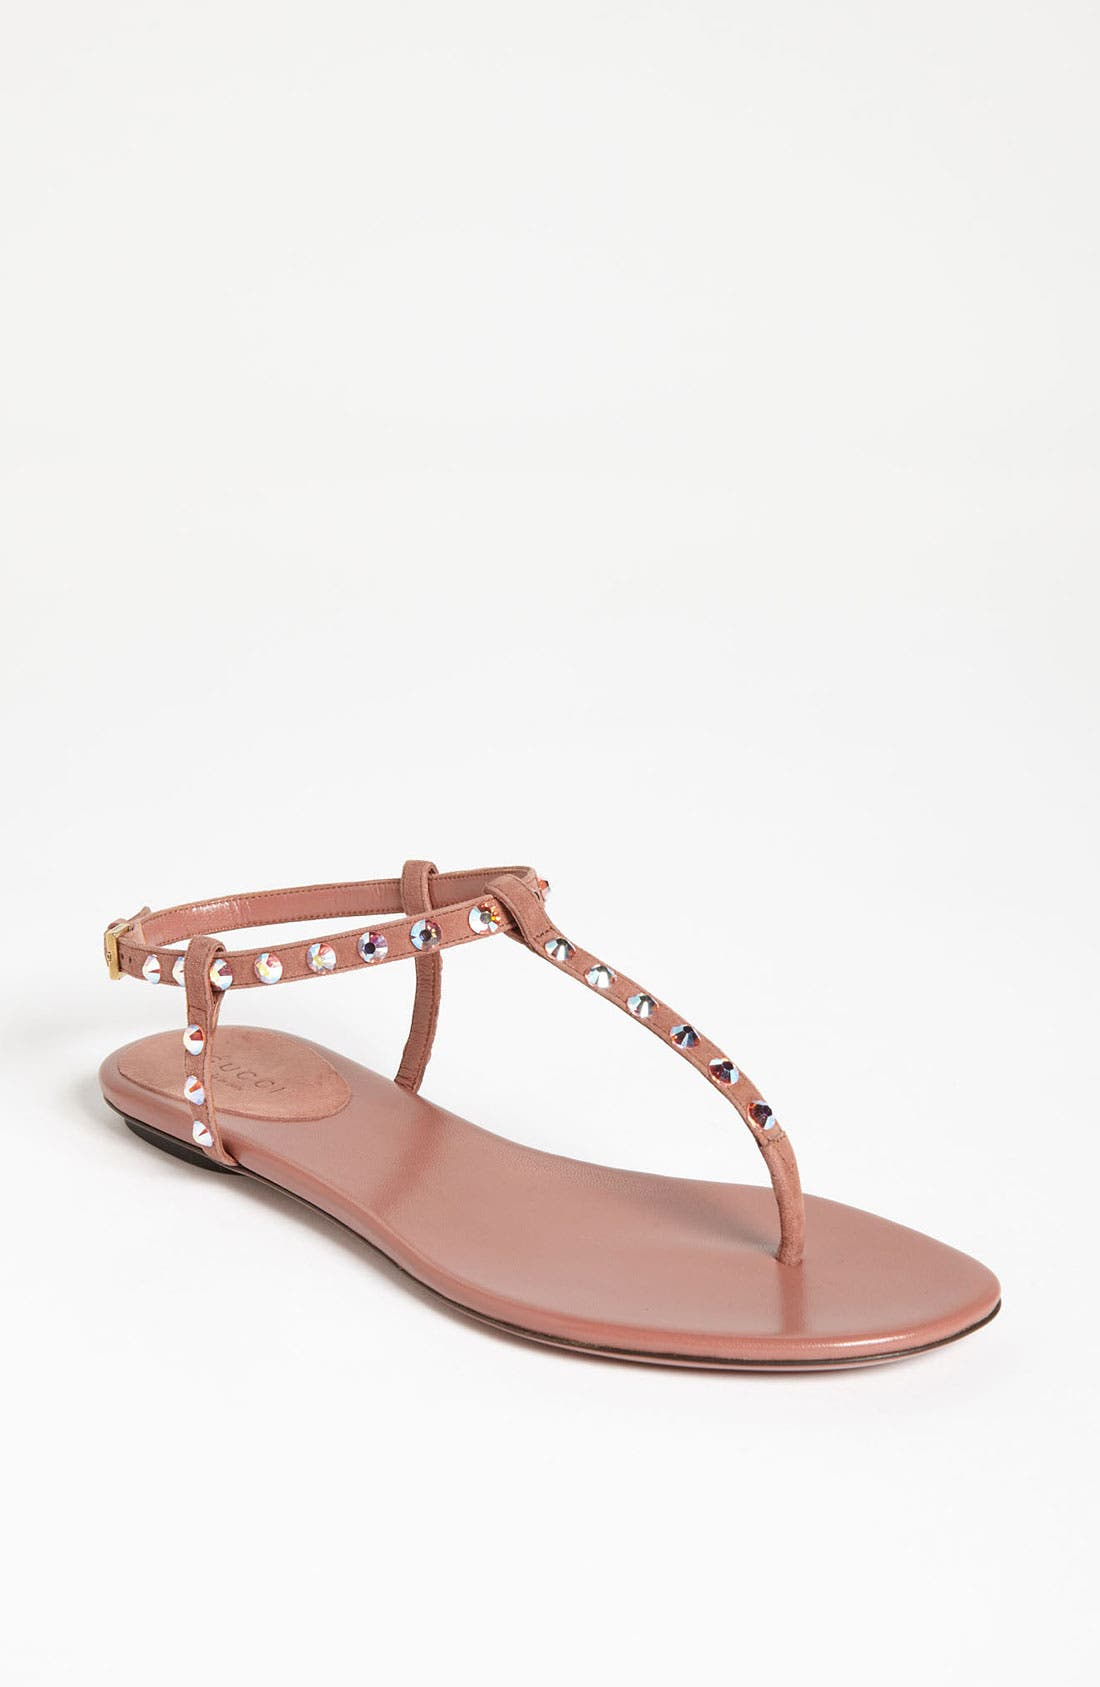 Alternate Image 1 Selected - Gucci 'Yulia' Sandal